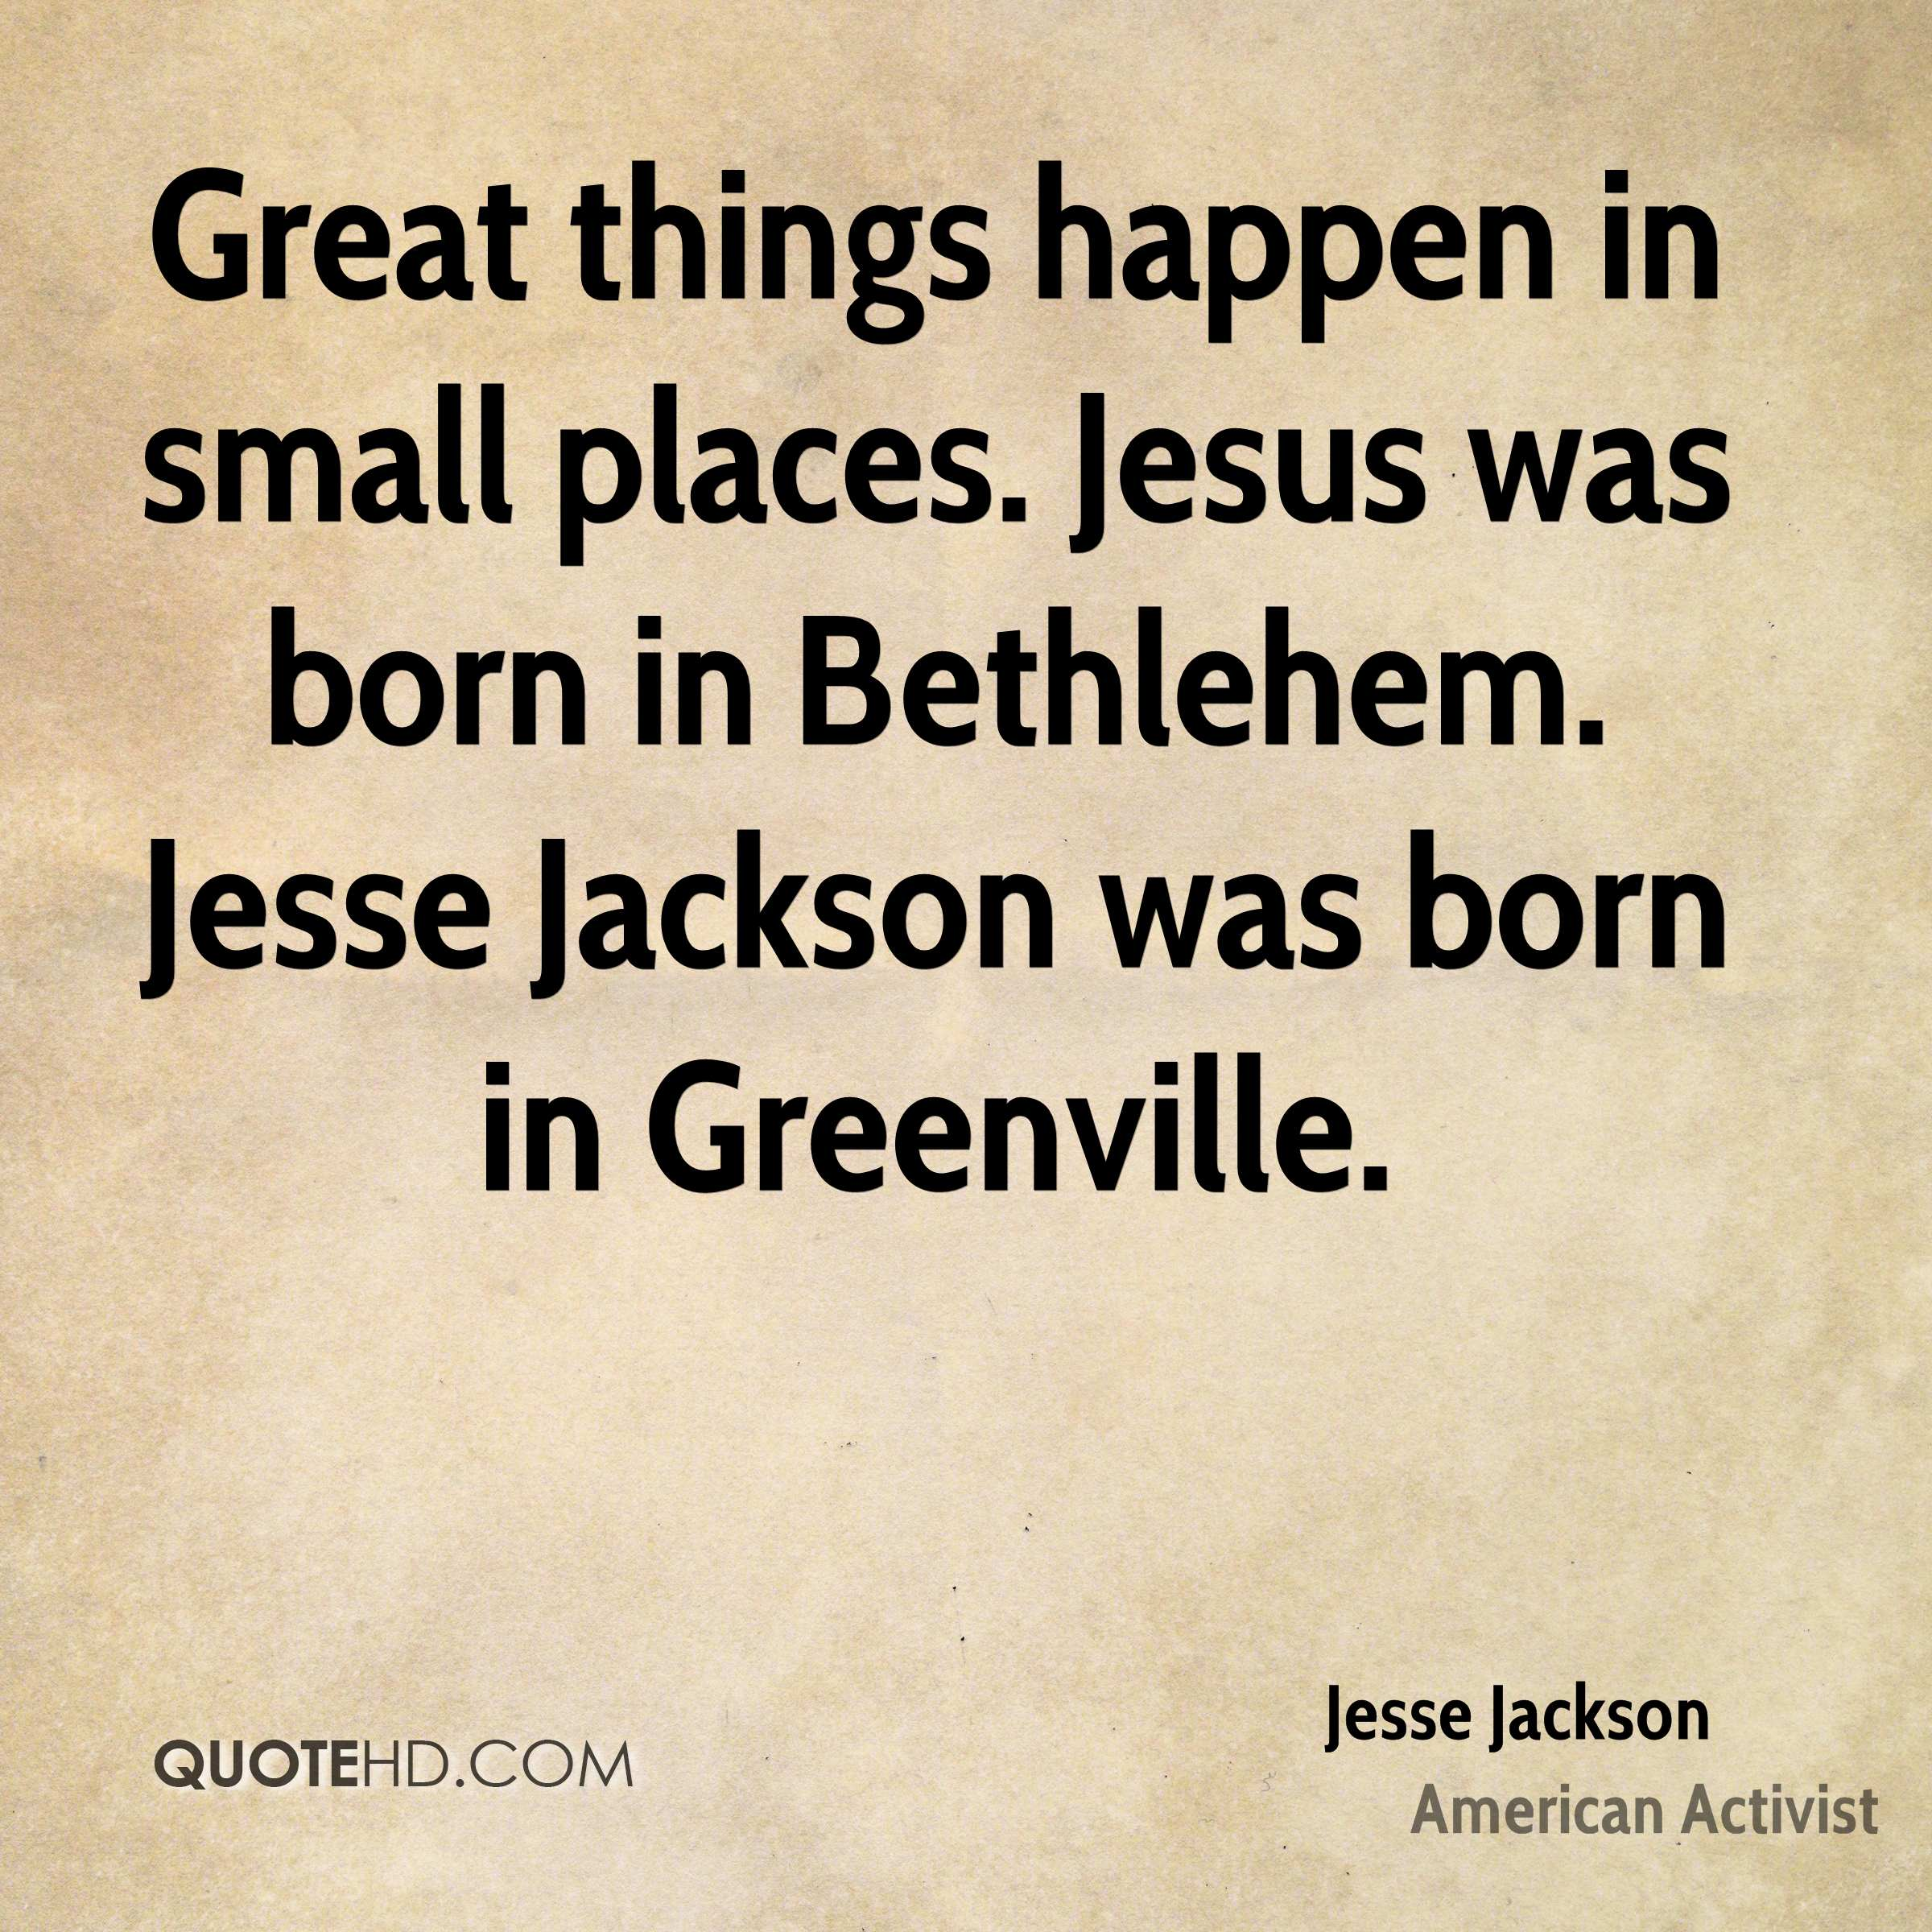 Great things happen in small places. Jesus was born in Bethlehem. Jesse Jackson was born in Greenville.